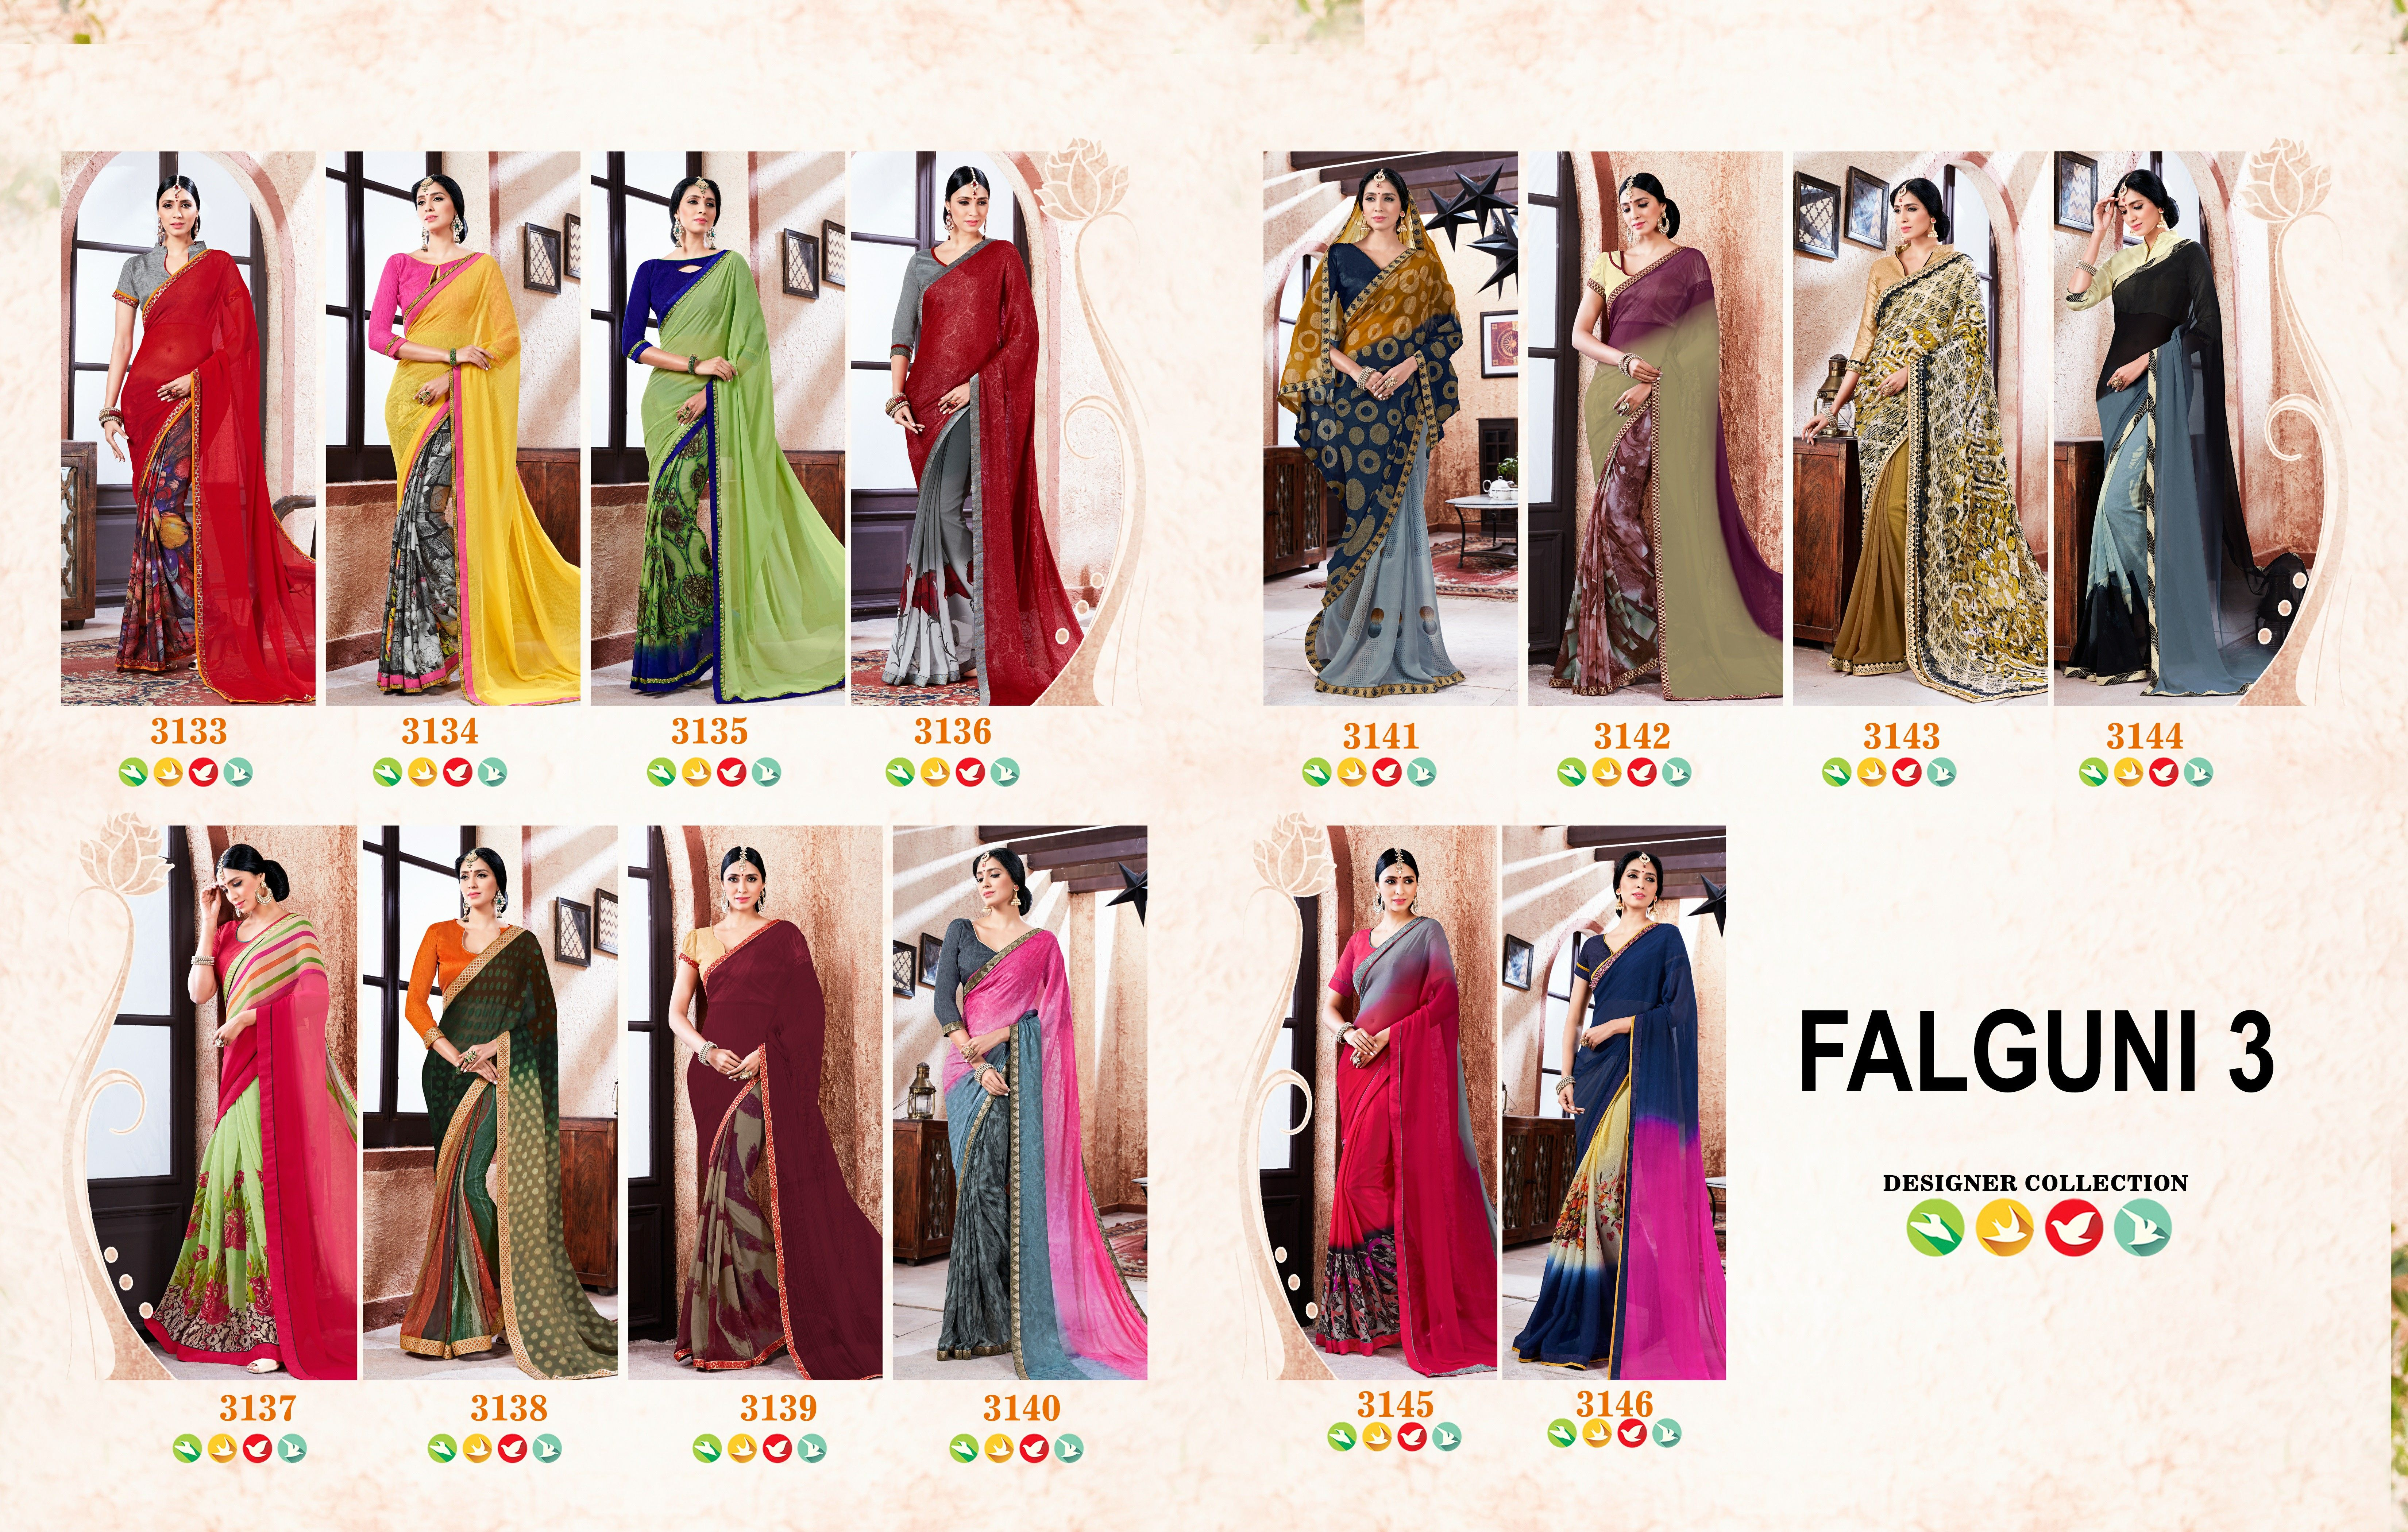 Catalog: FALGUNI 3 Brand: Liberty Lifestyle Product: Digital Printed Georgette Saree Saree Fabric: Georgette Blouse Fabric: Banglori  Catalog Design No: 3133 to 3146 Catalog Piece: 14  Wholesale Rate: 595/- Rs  Dispatching Time: Same Day  https://www.facebook.com/libertylifestylesurat/posts/1052115951558872  Catalog HD Image and Full Details Link: https://goo.gl/eQ3FB9  FOR Orders / Inquiry / Whats App: +91 97263 00063 Email: libertylifestyle.online@gmail.com  LIBERTY LIFESTYLE Manufacturer…